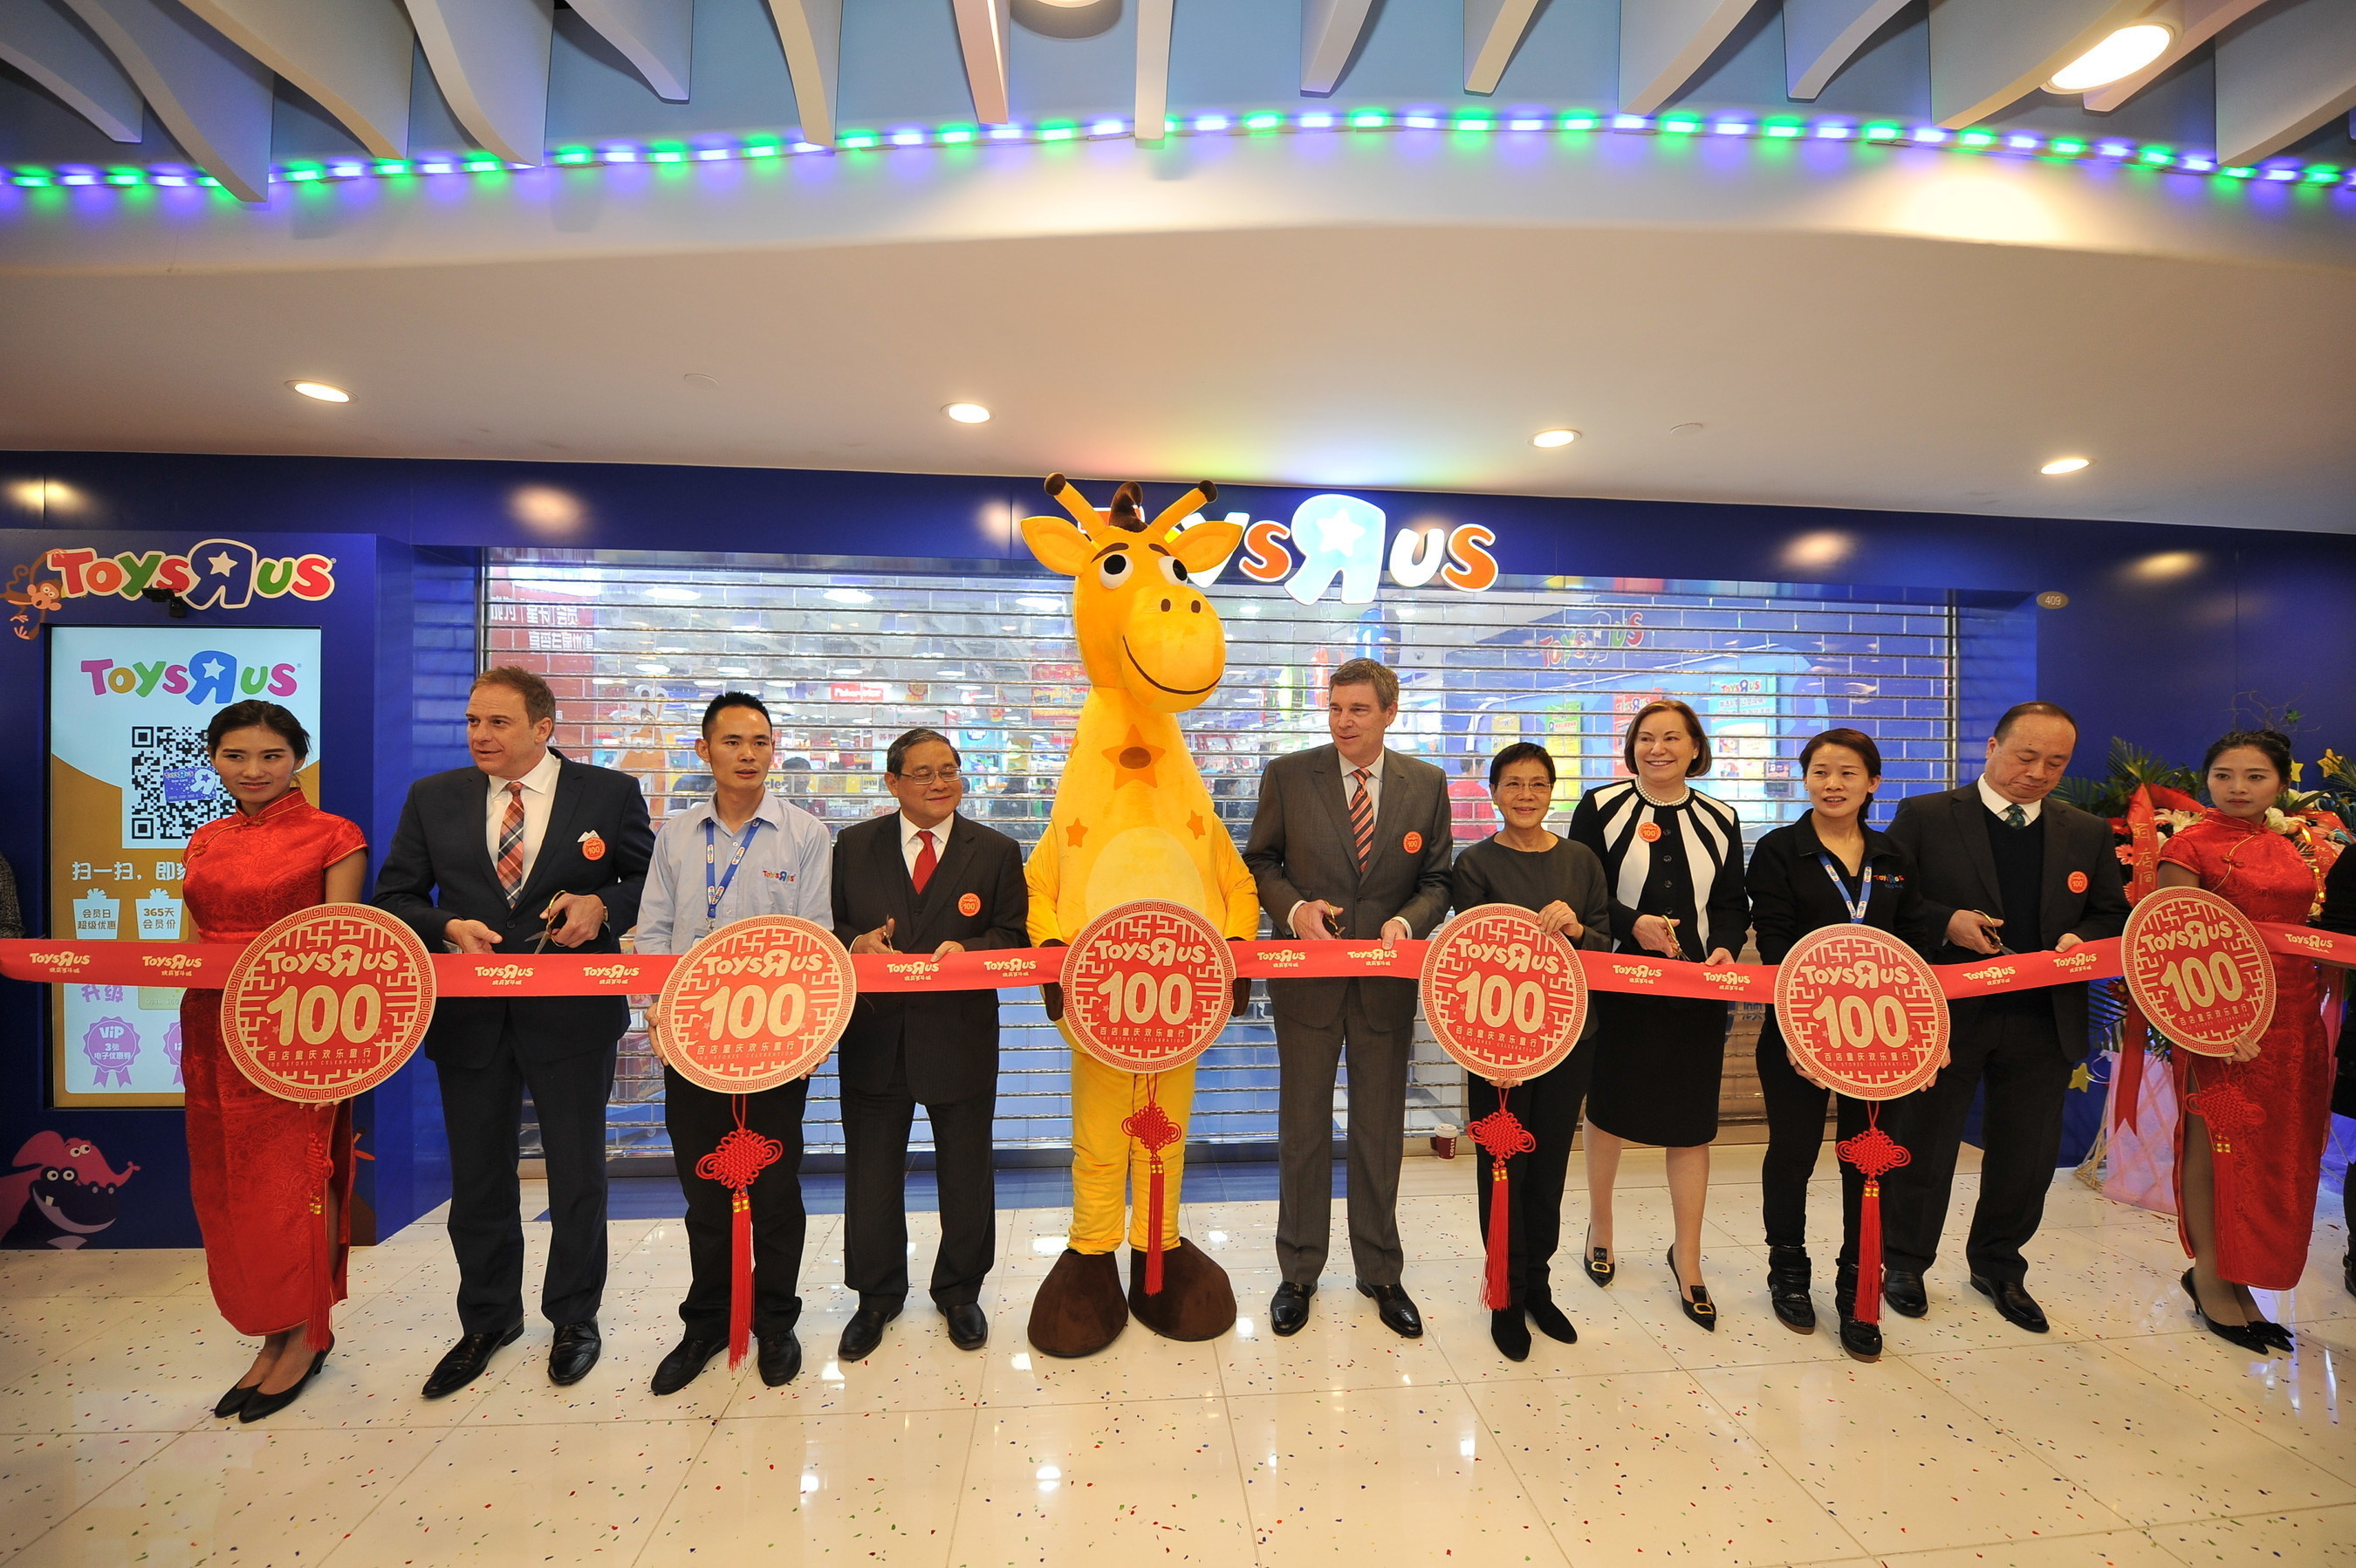 toys r us opens its 100th store in china